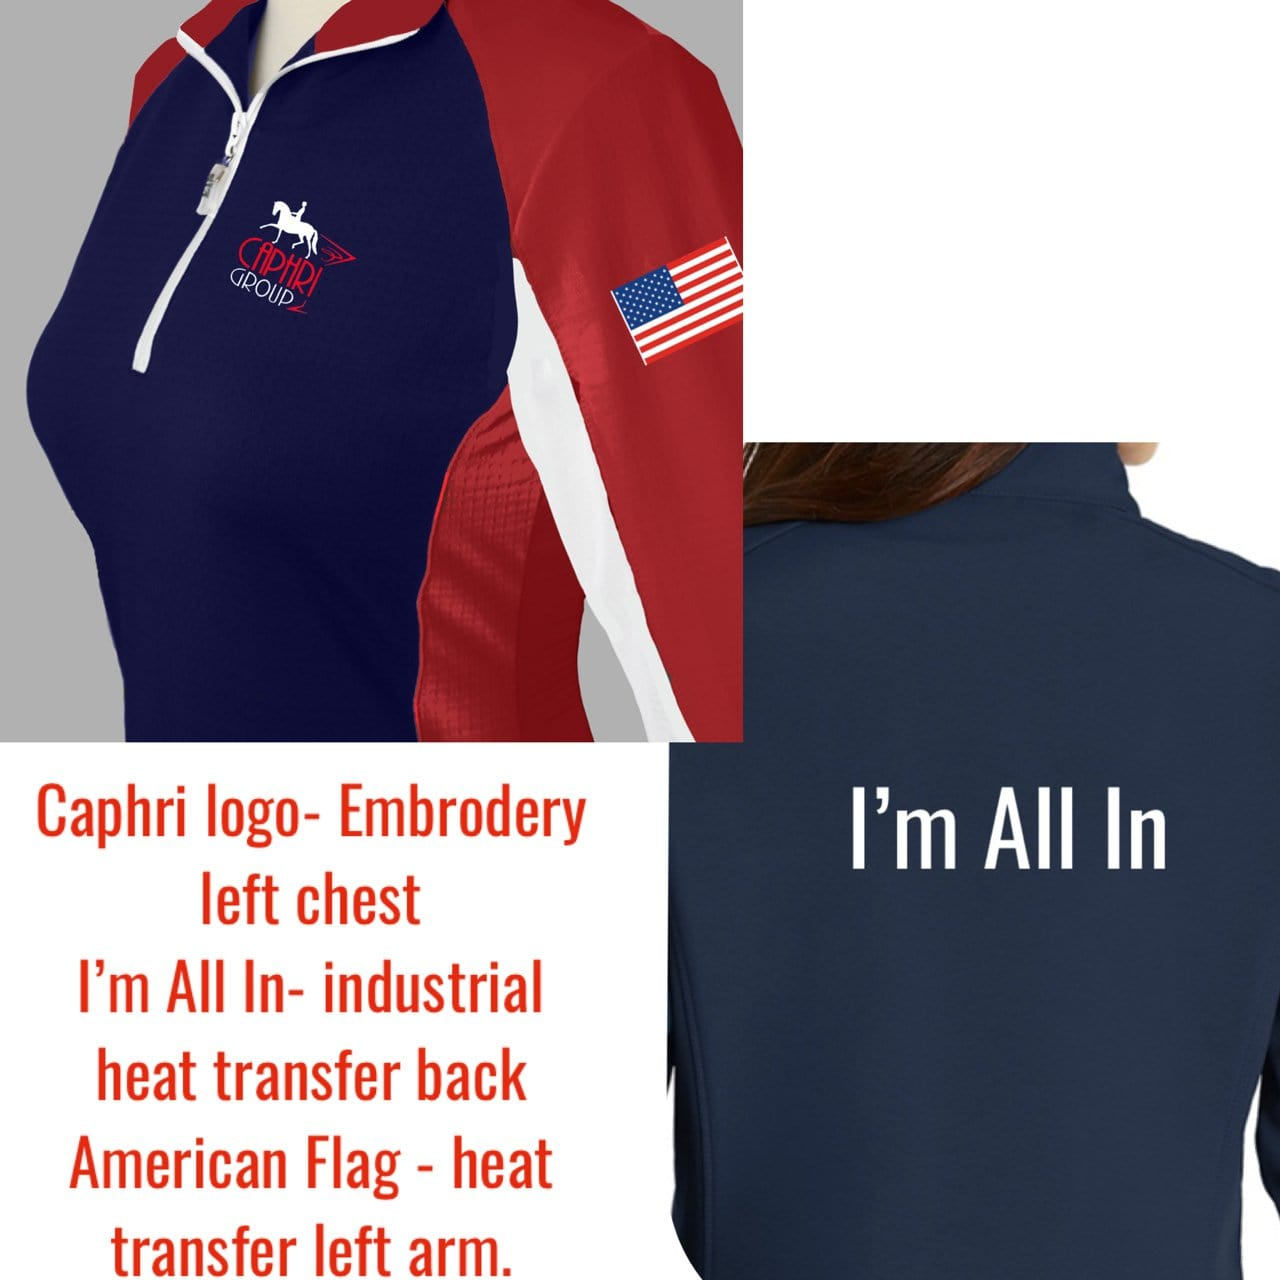 Equestrian Team Apparel Custom Team Shirts XSmall Caphri Group Sunshirts equestrian team apparel online tack store mobile tack store custom farm apparel custom show stable clothing equestrian lifestyle horse show clothing riding clothes horses equestrian tack store